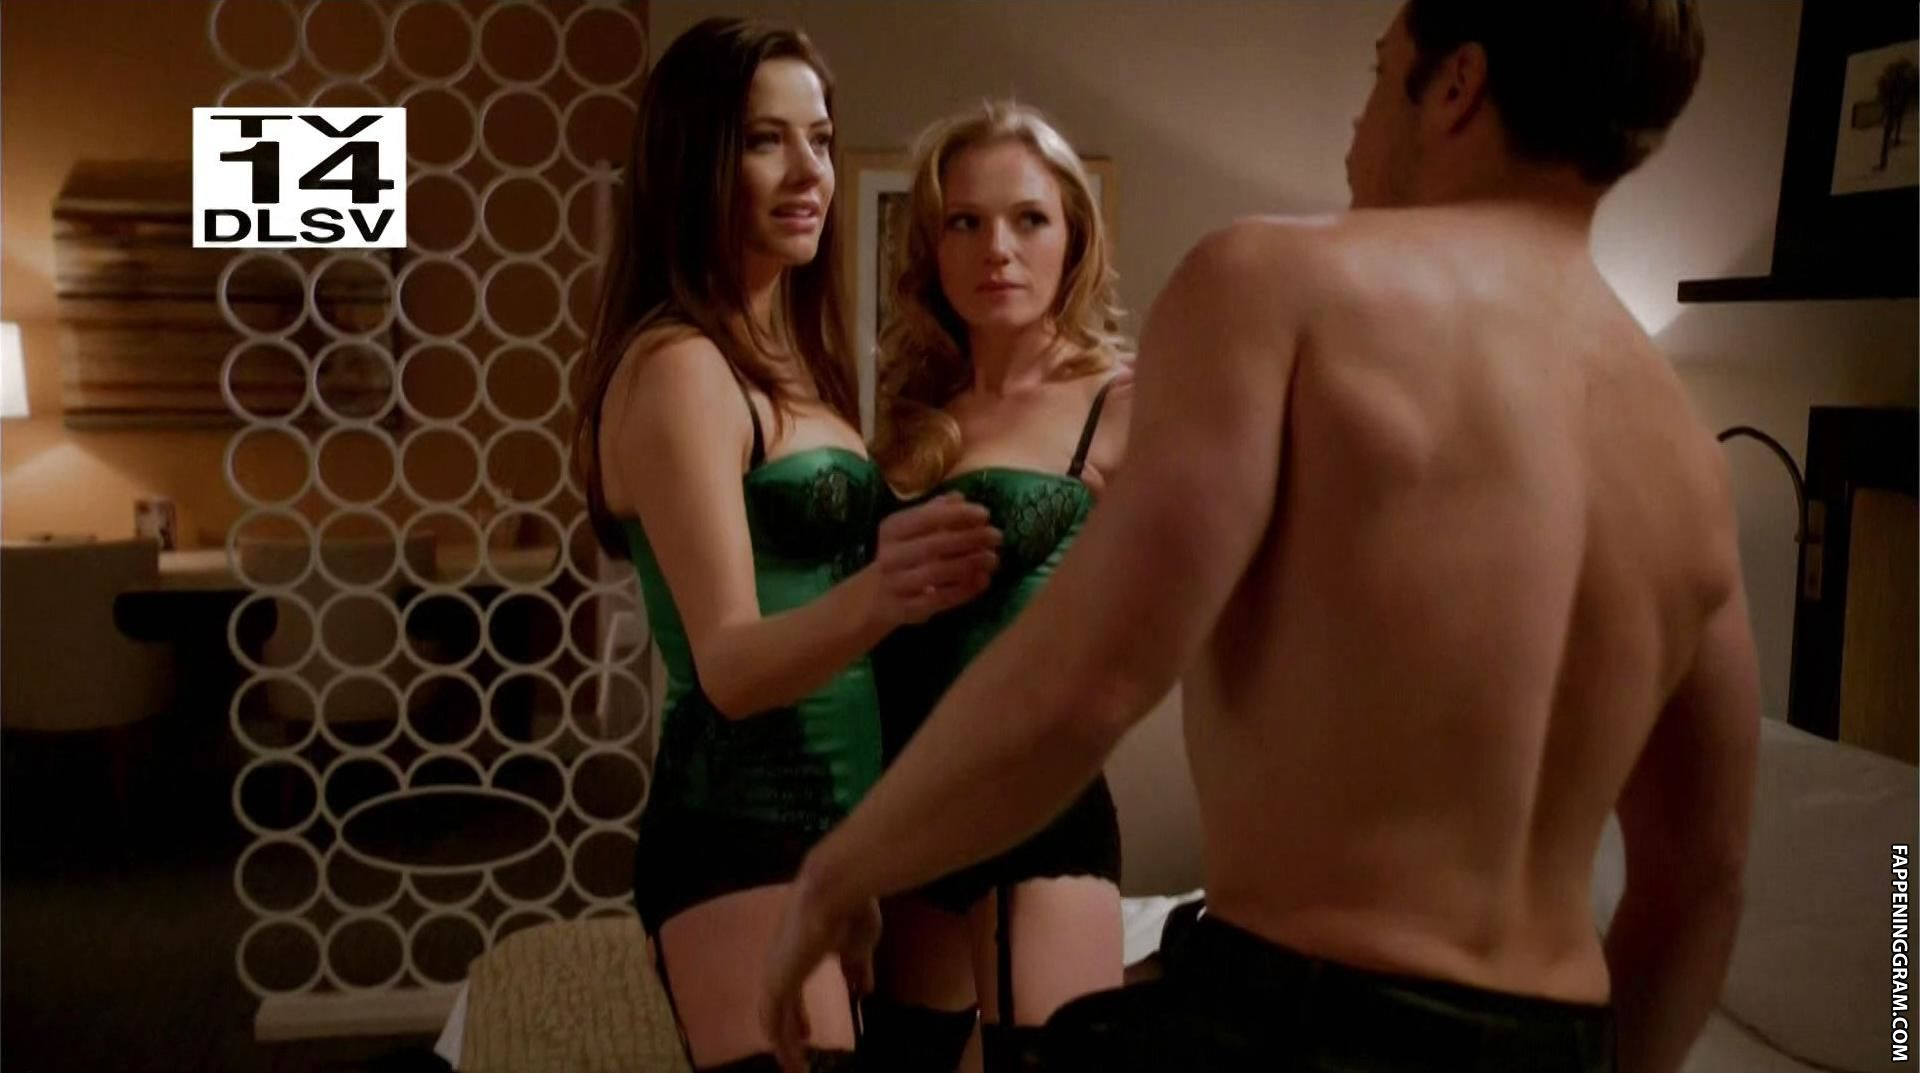 Julie Gonzalo Nude Fakes Displaying Big Boobs And Pussy